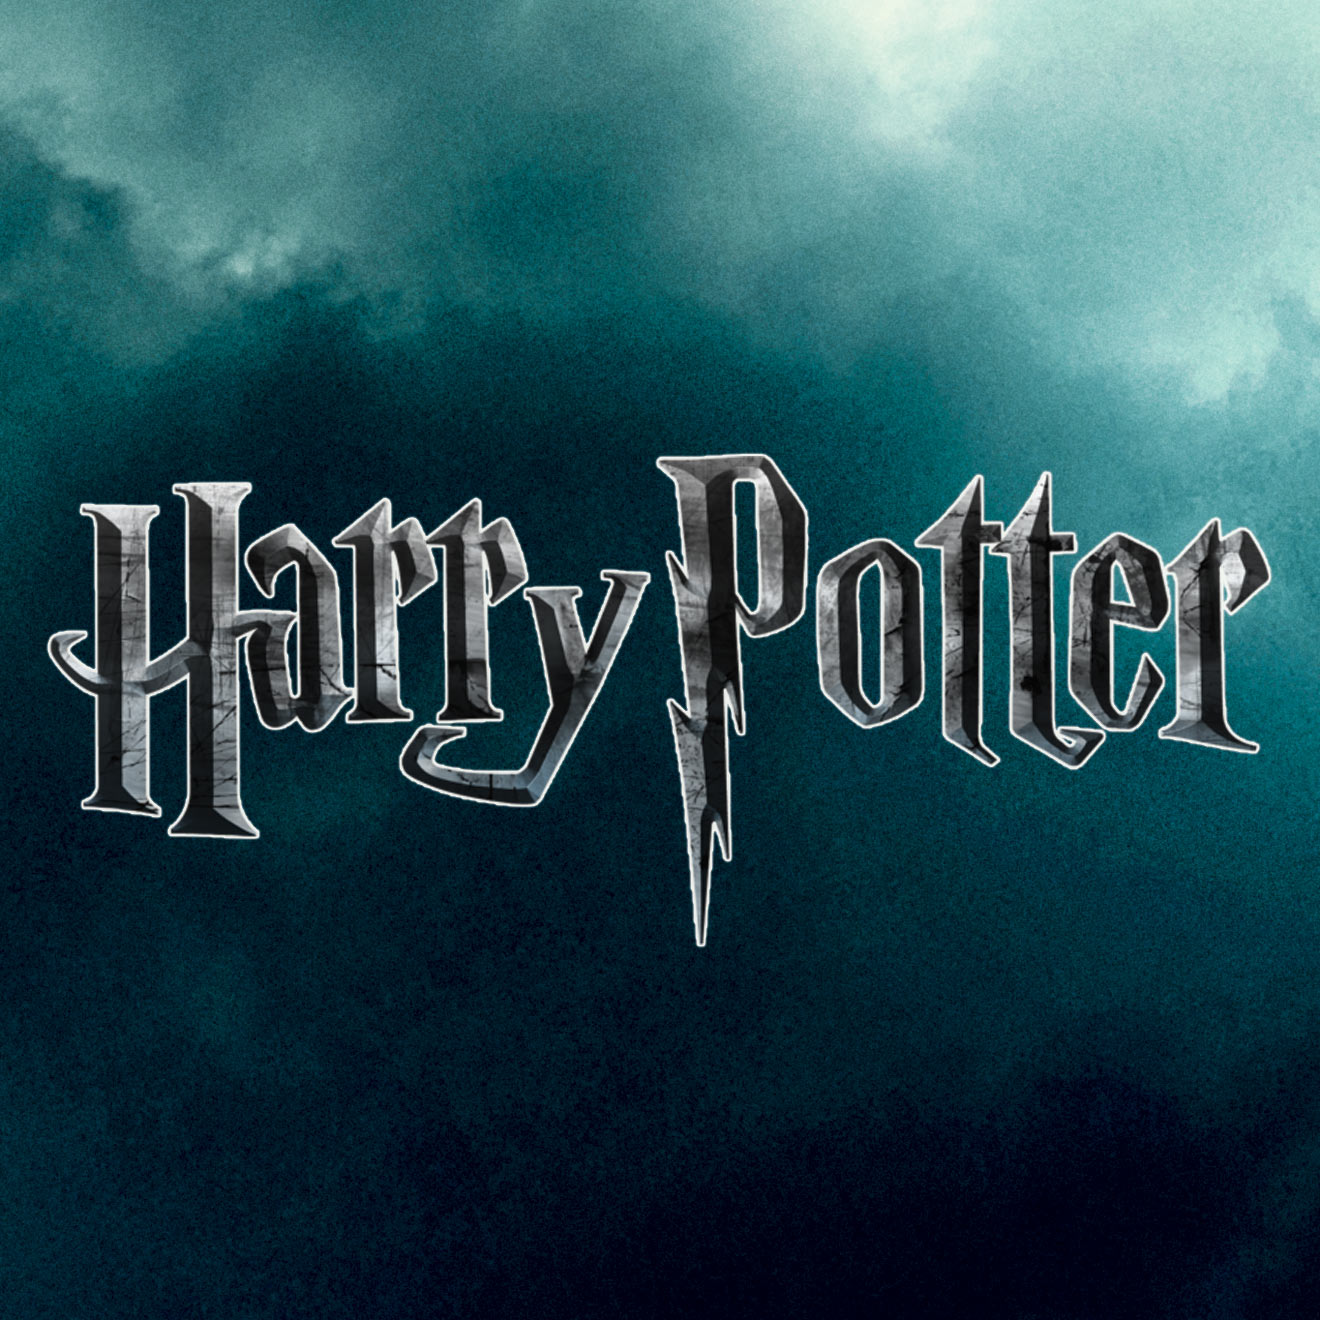 """Harry Potter"": Mega News für Zauberer-Fans"